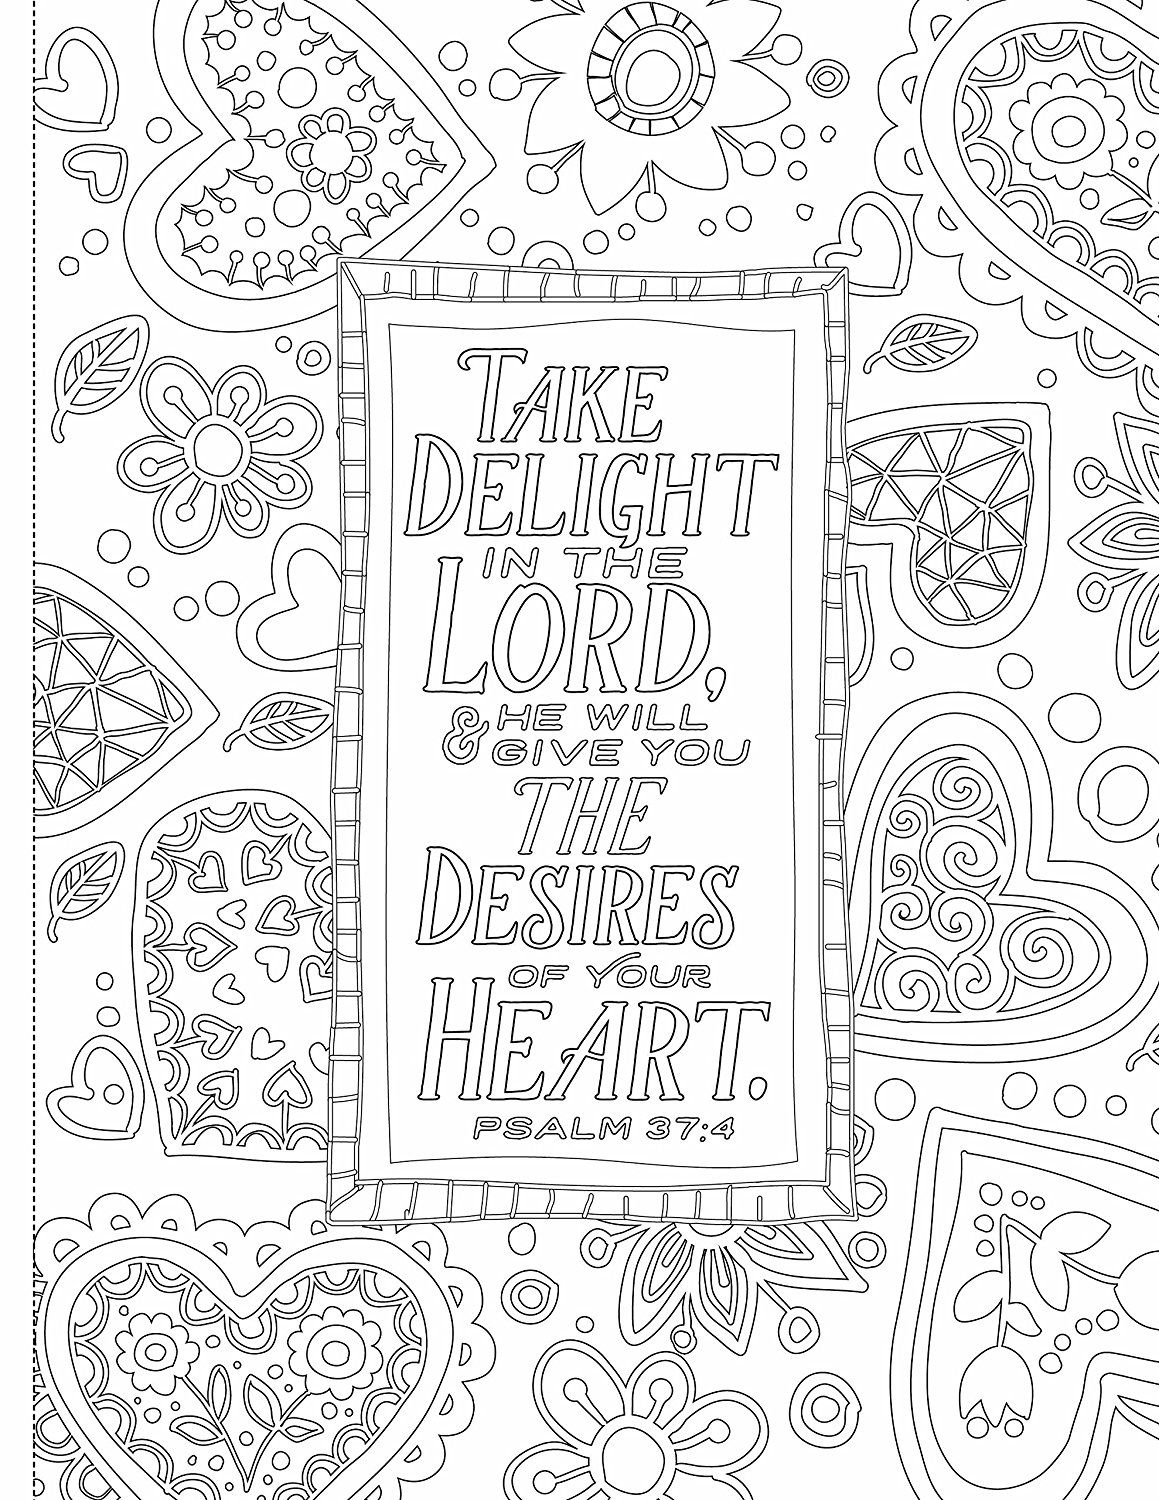 - Inspiring Words Coloring Book: 30 Verses From The Bible You Can